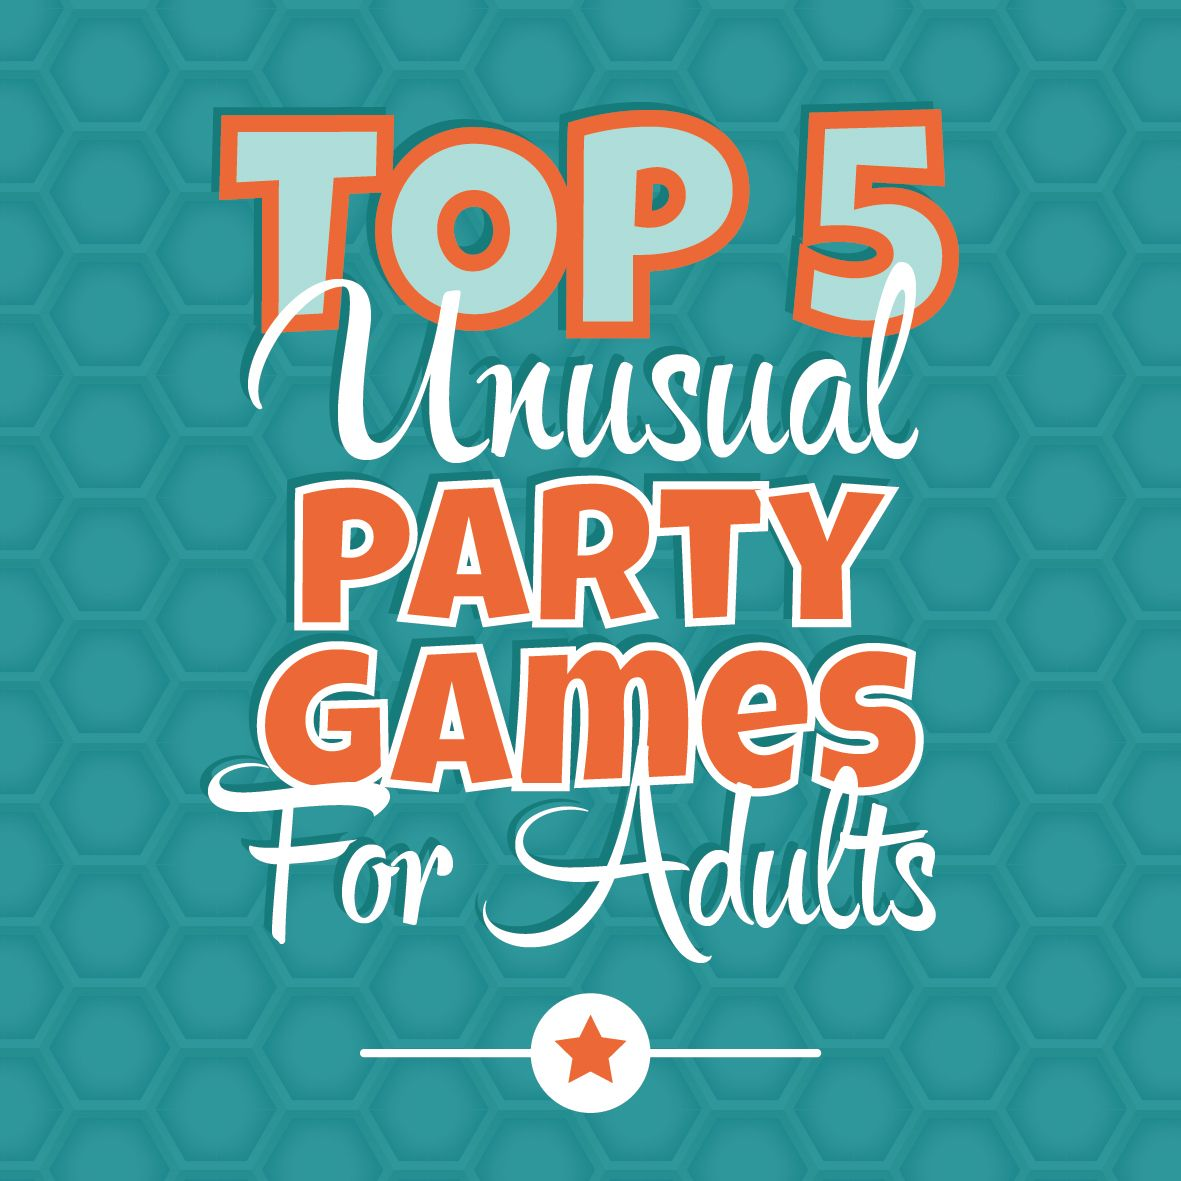 funny party games for adults burst balloon - Google Search ...